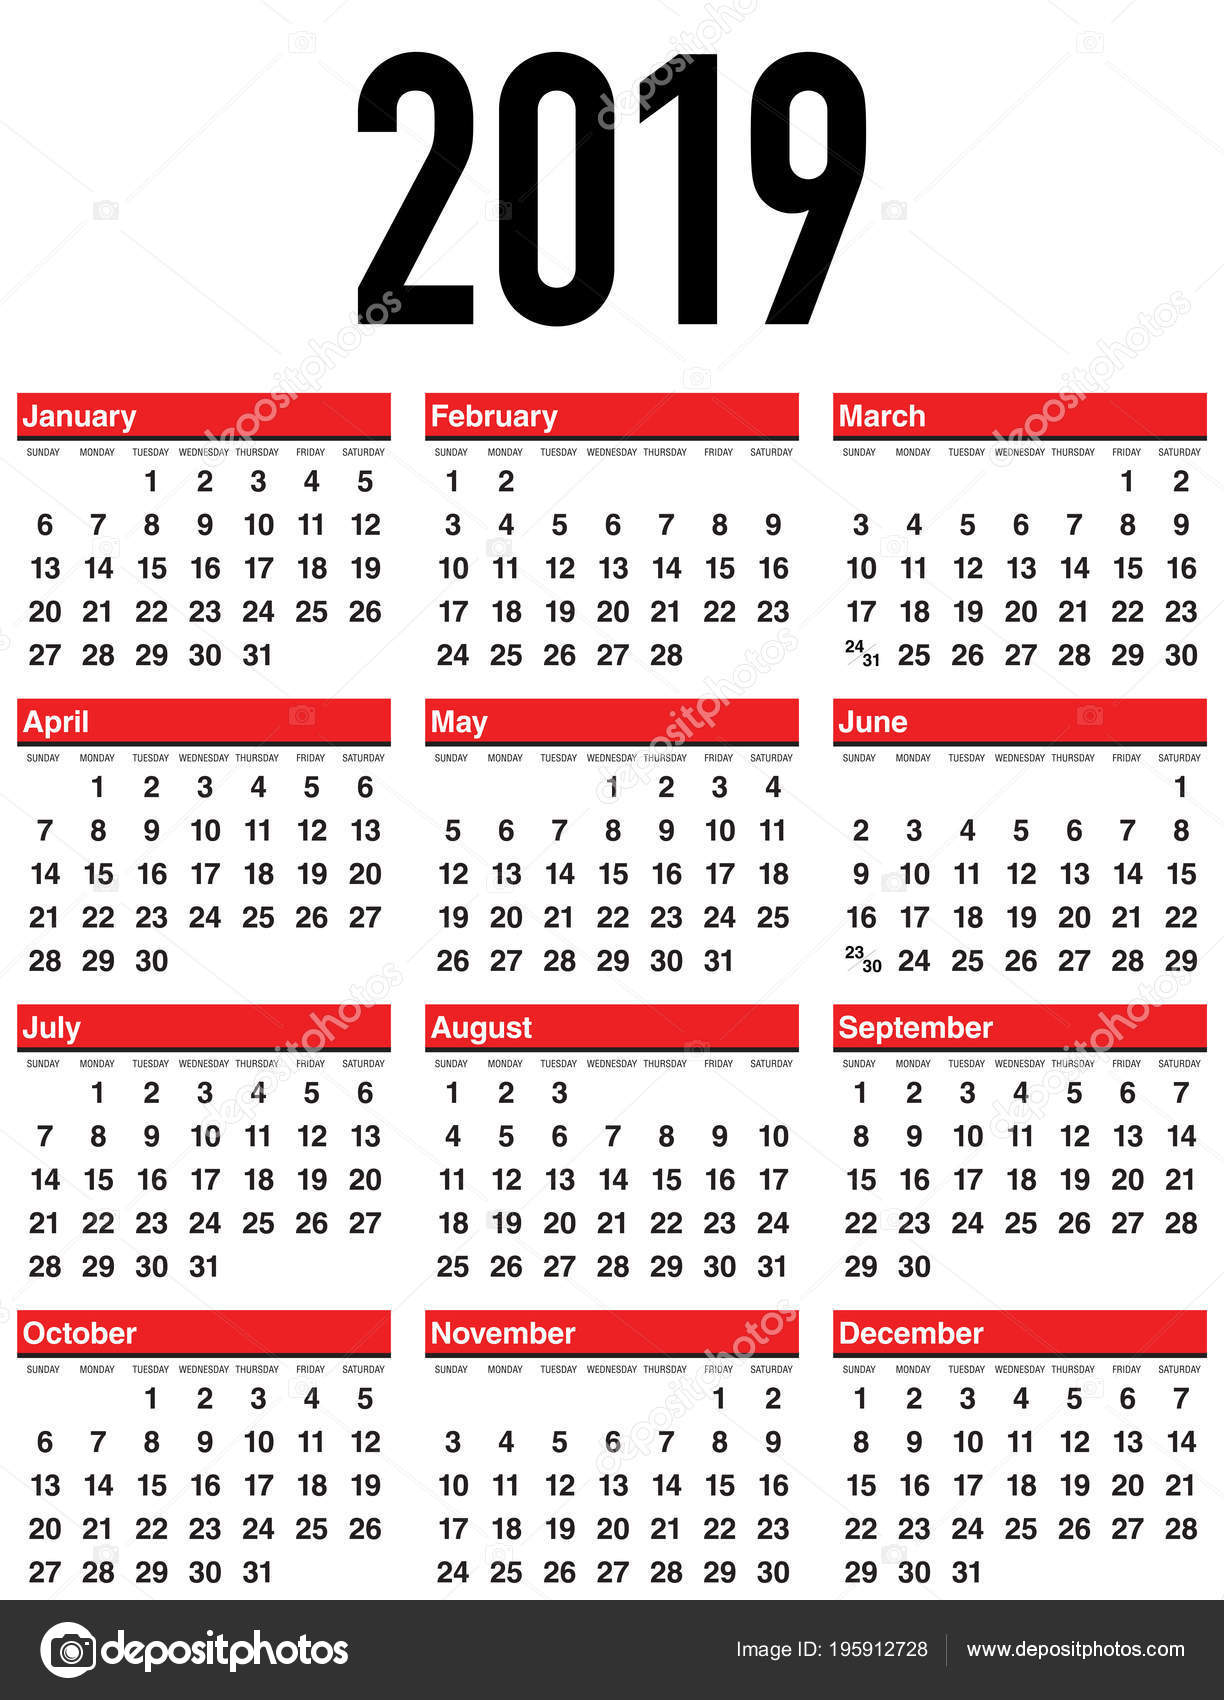 Calendario 2019 Por Semanas.Vector Calendario 2019 Semana Empieza Domingo Archivo